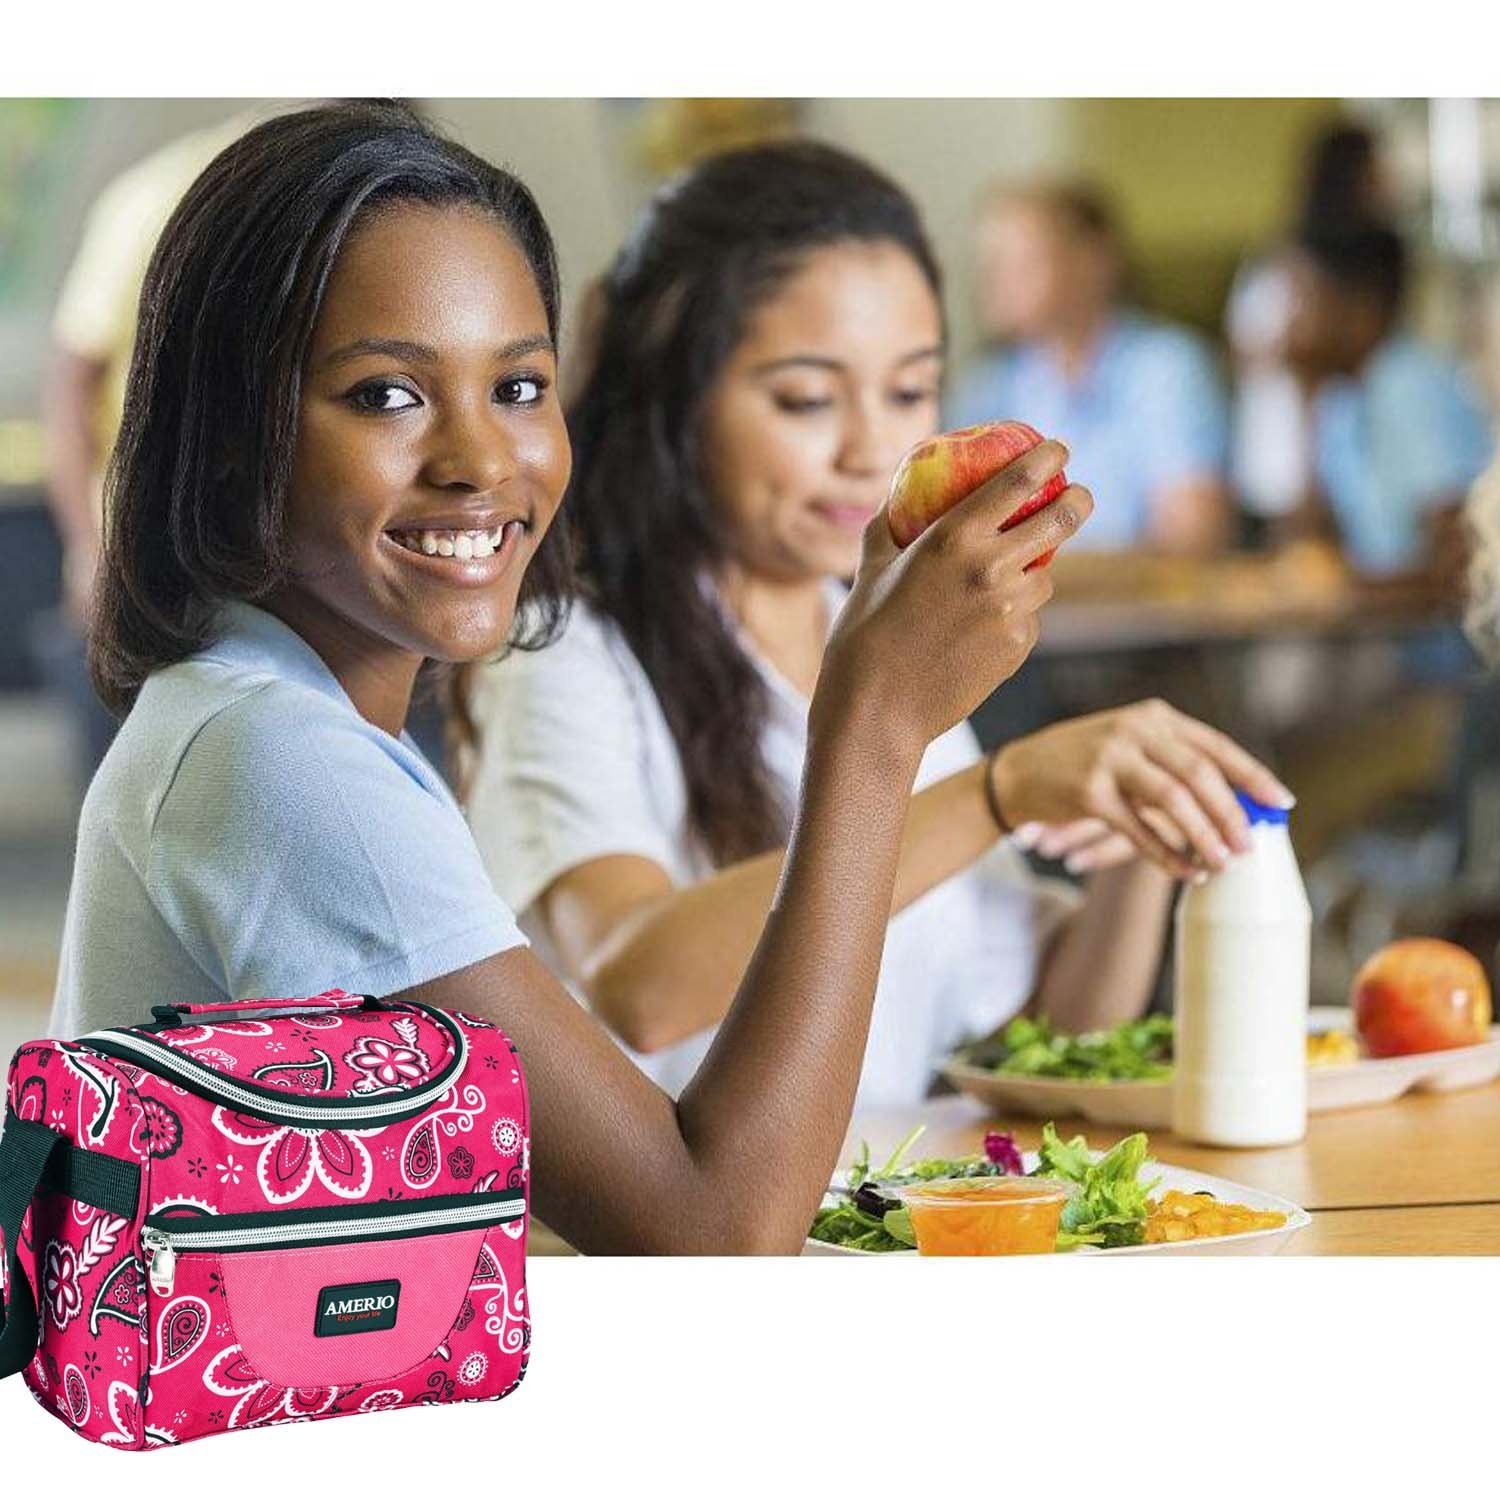 Insulated lunch bag for kids, AMERIO Lunch Box For Work Men, Women, Smooth Zipper& Lightweight, Small Lunch Box for Grils with Adjustable Strap (Pink)